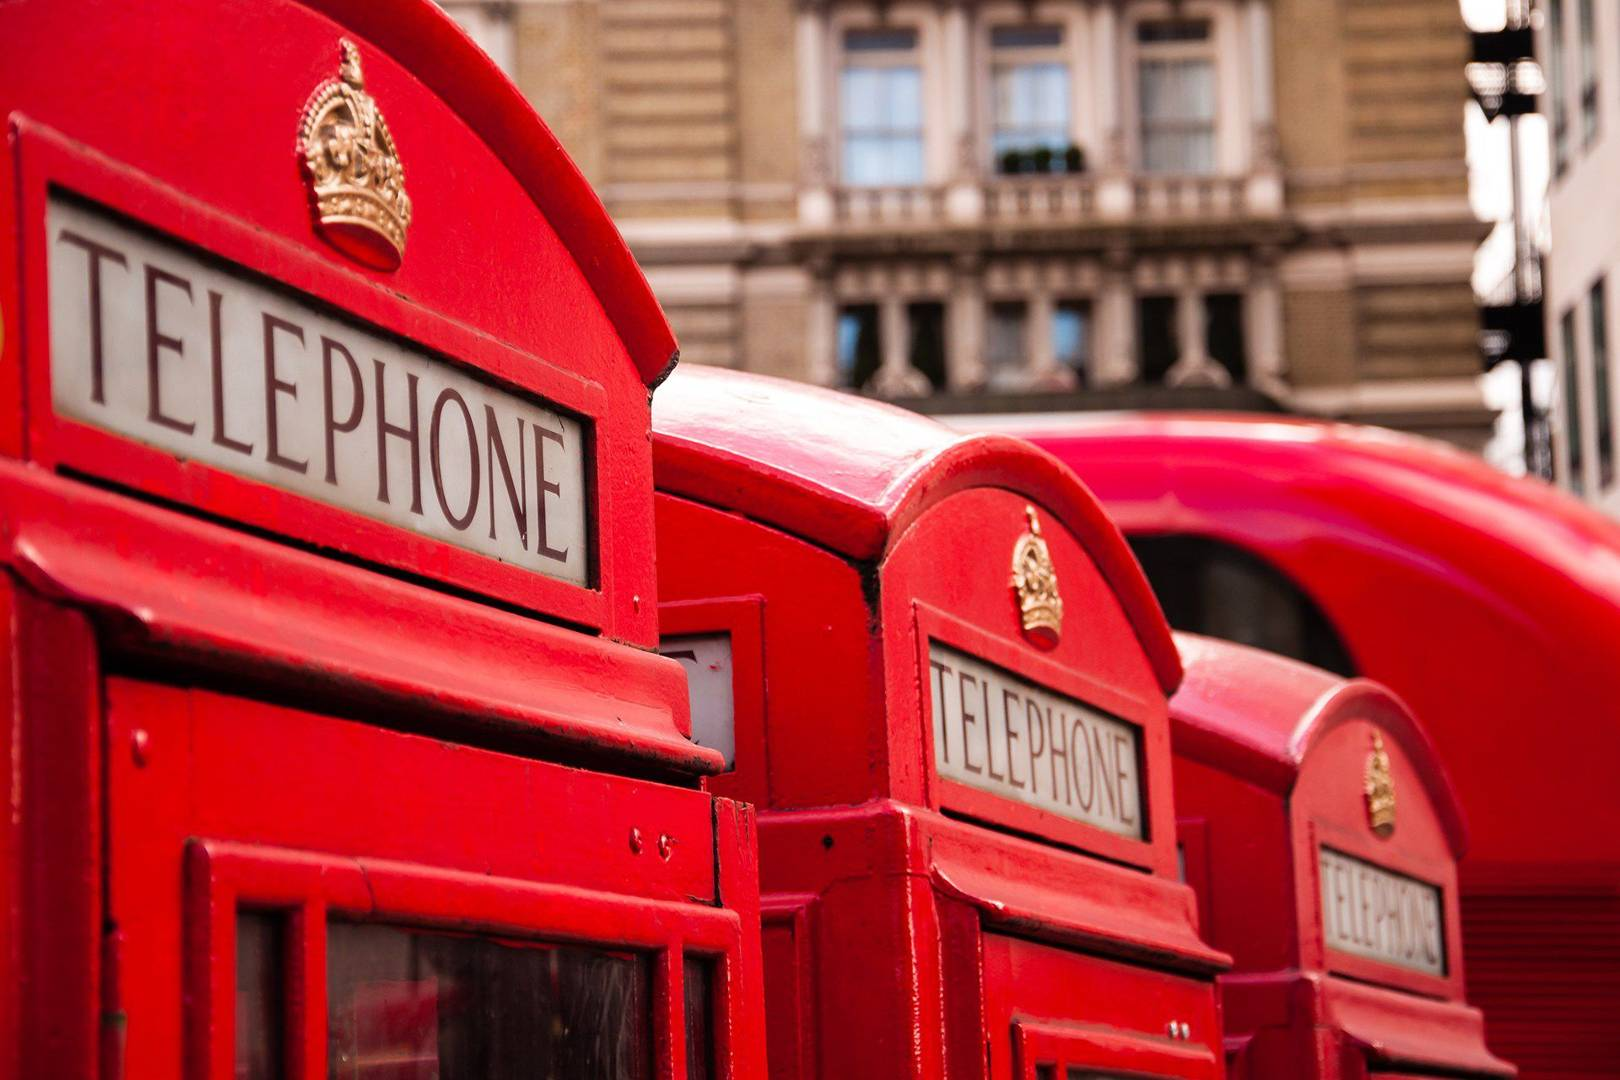 New York phone booths turned into free Wi-Fi hubs